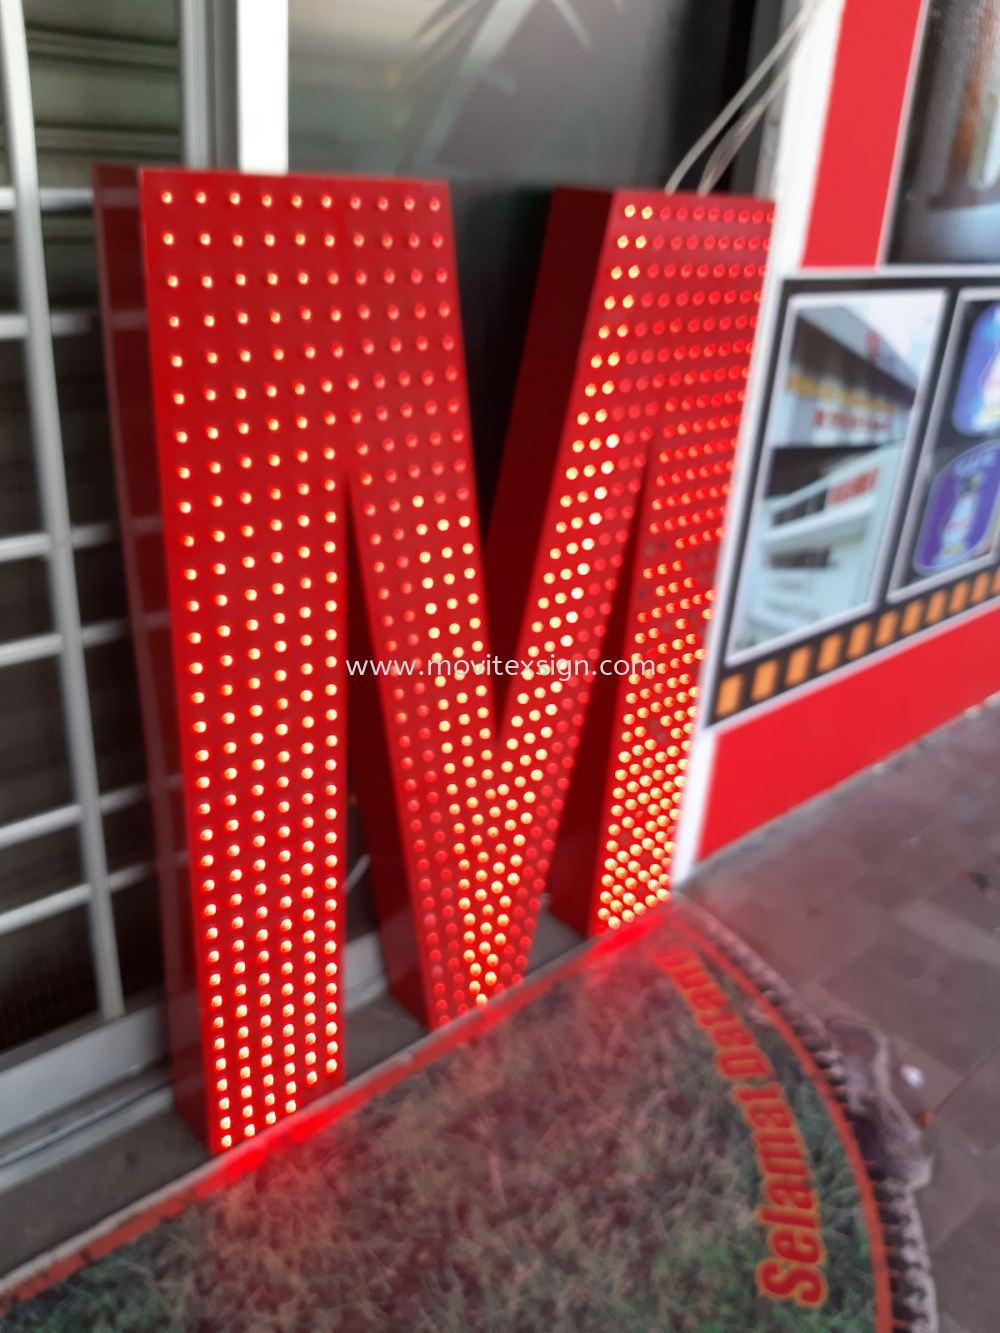 led dotted 3D mini light for building Signboard / Lighting Signboard  Johor Bahru (JB), Johor, Malaysia. Design, Supplier, Manufacturers, Suppliers | M-Movitexsign Advertising Art & Print Sdn Bhd